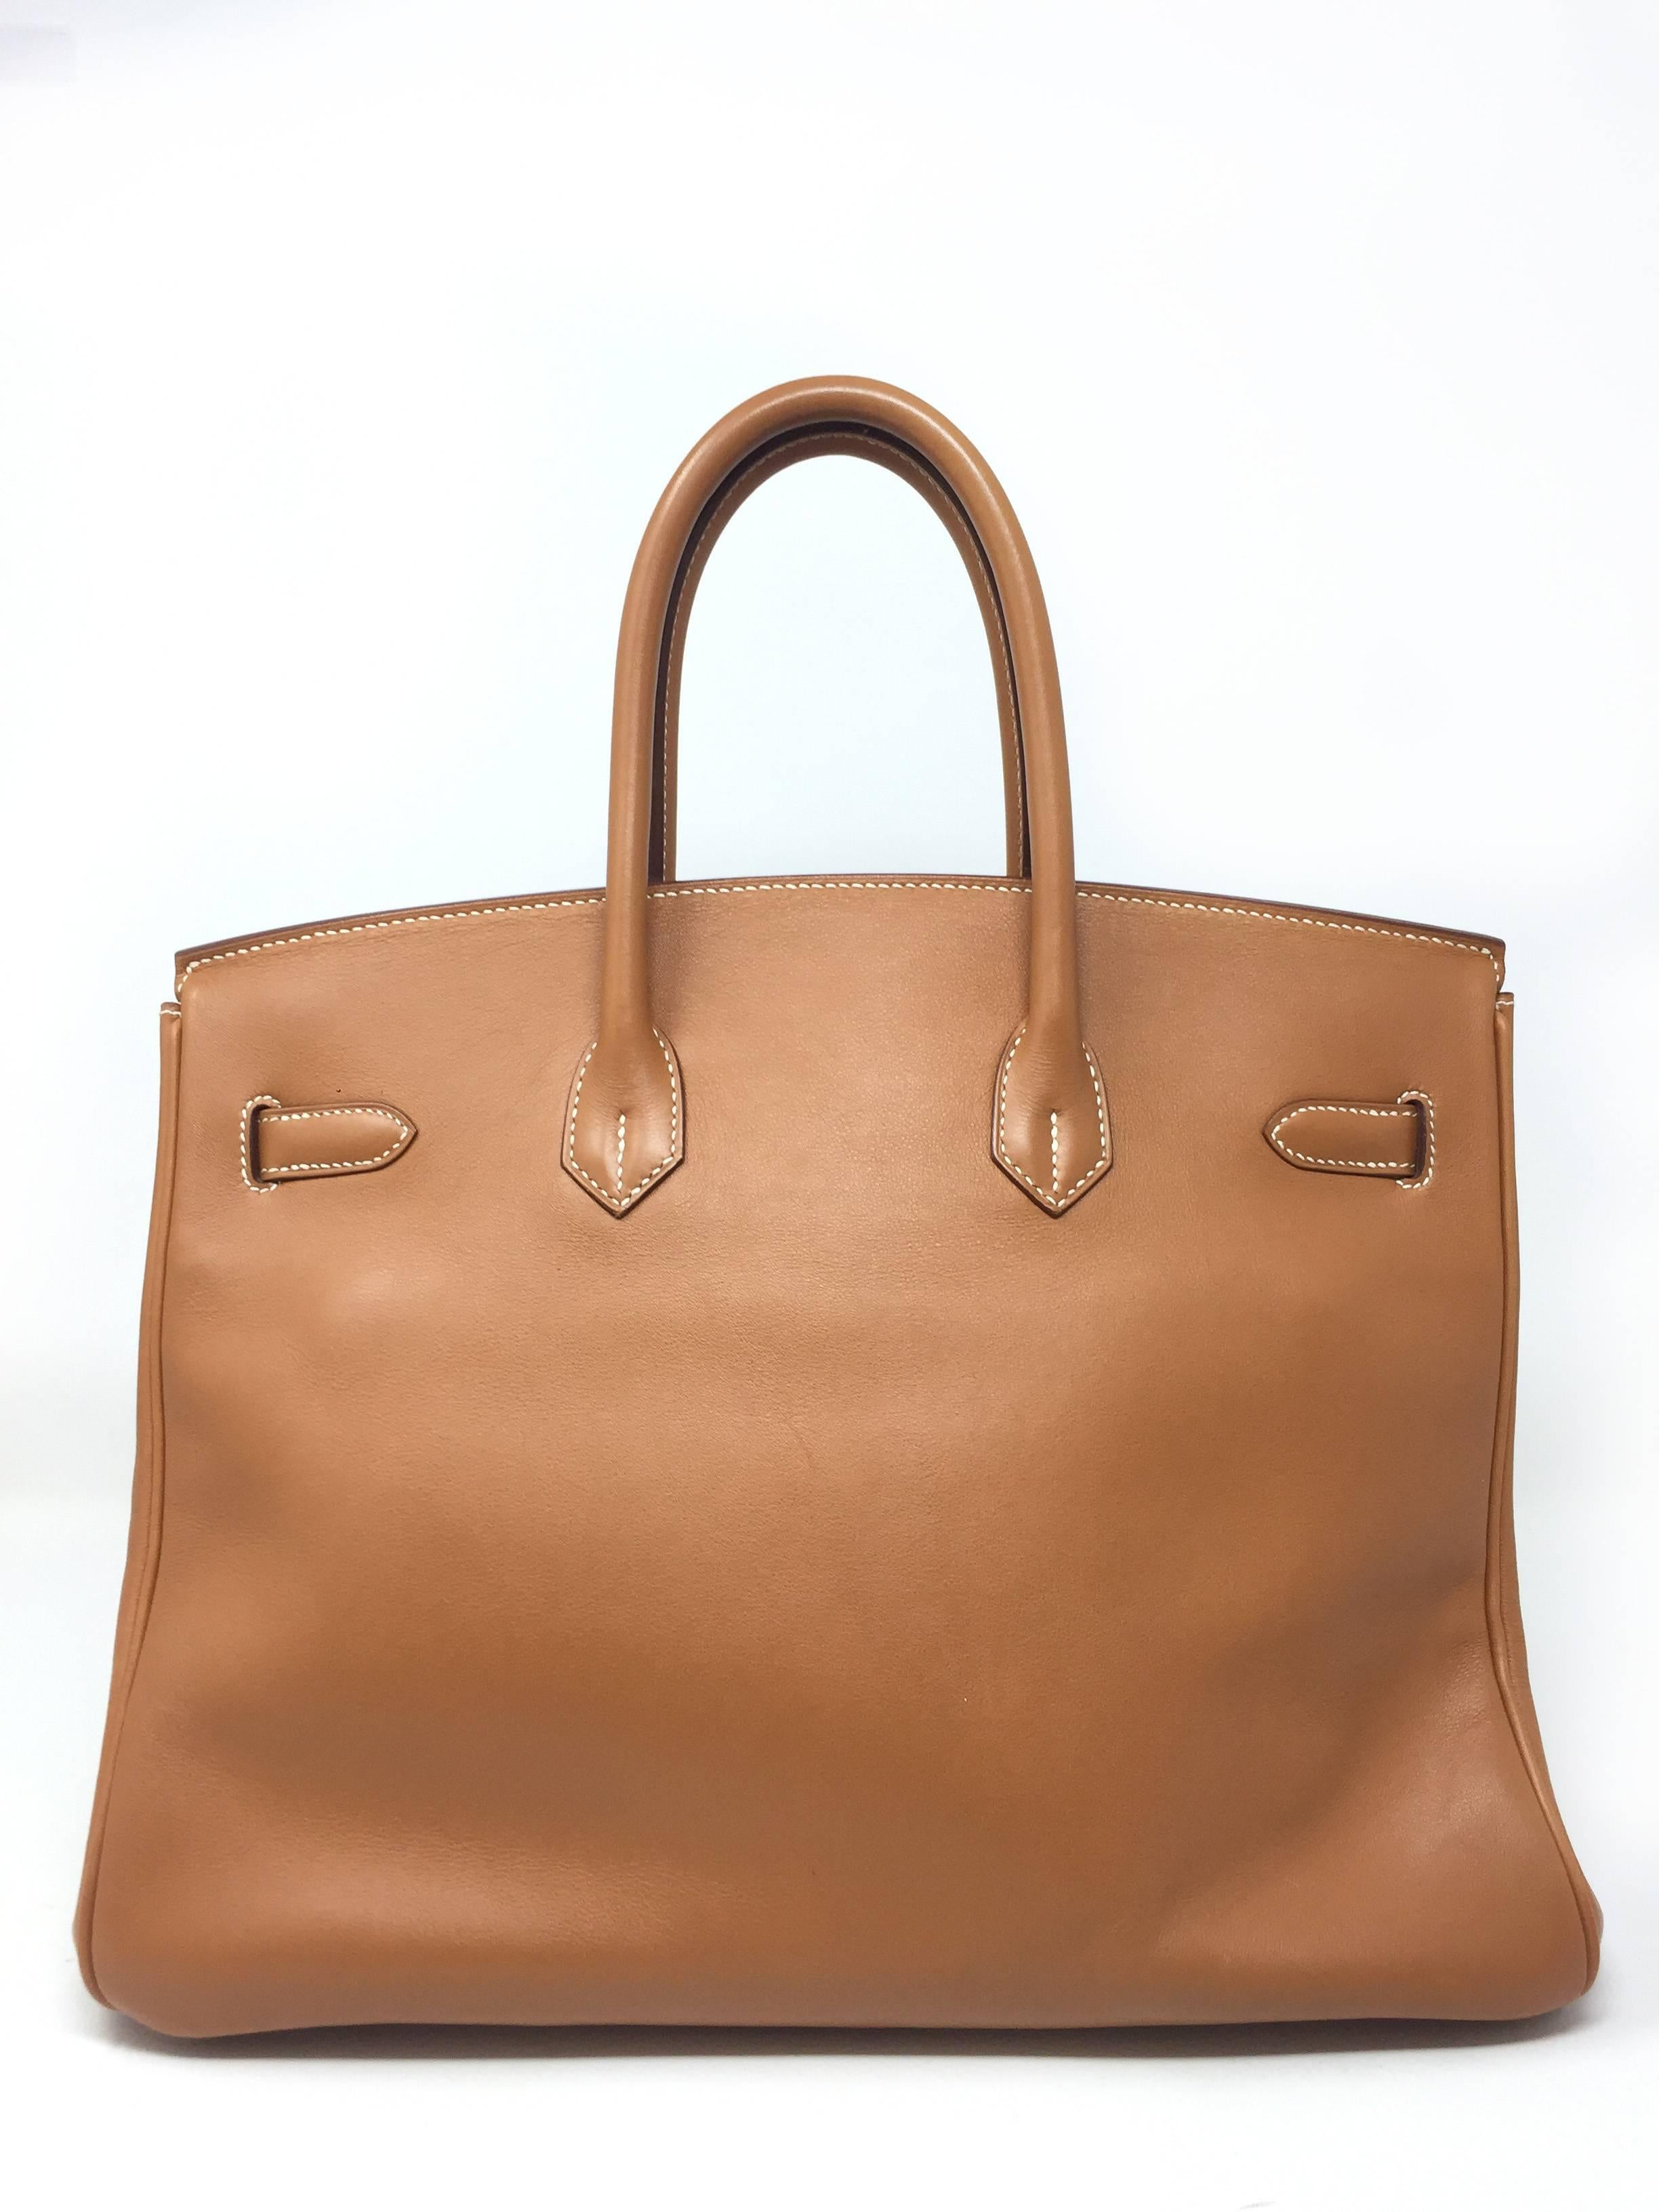 792795144b25 Hermes Paris Sac Birkin 35 Swift Gold Leather Bag, 2008 at 1stdibs